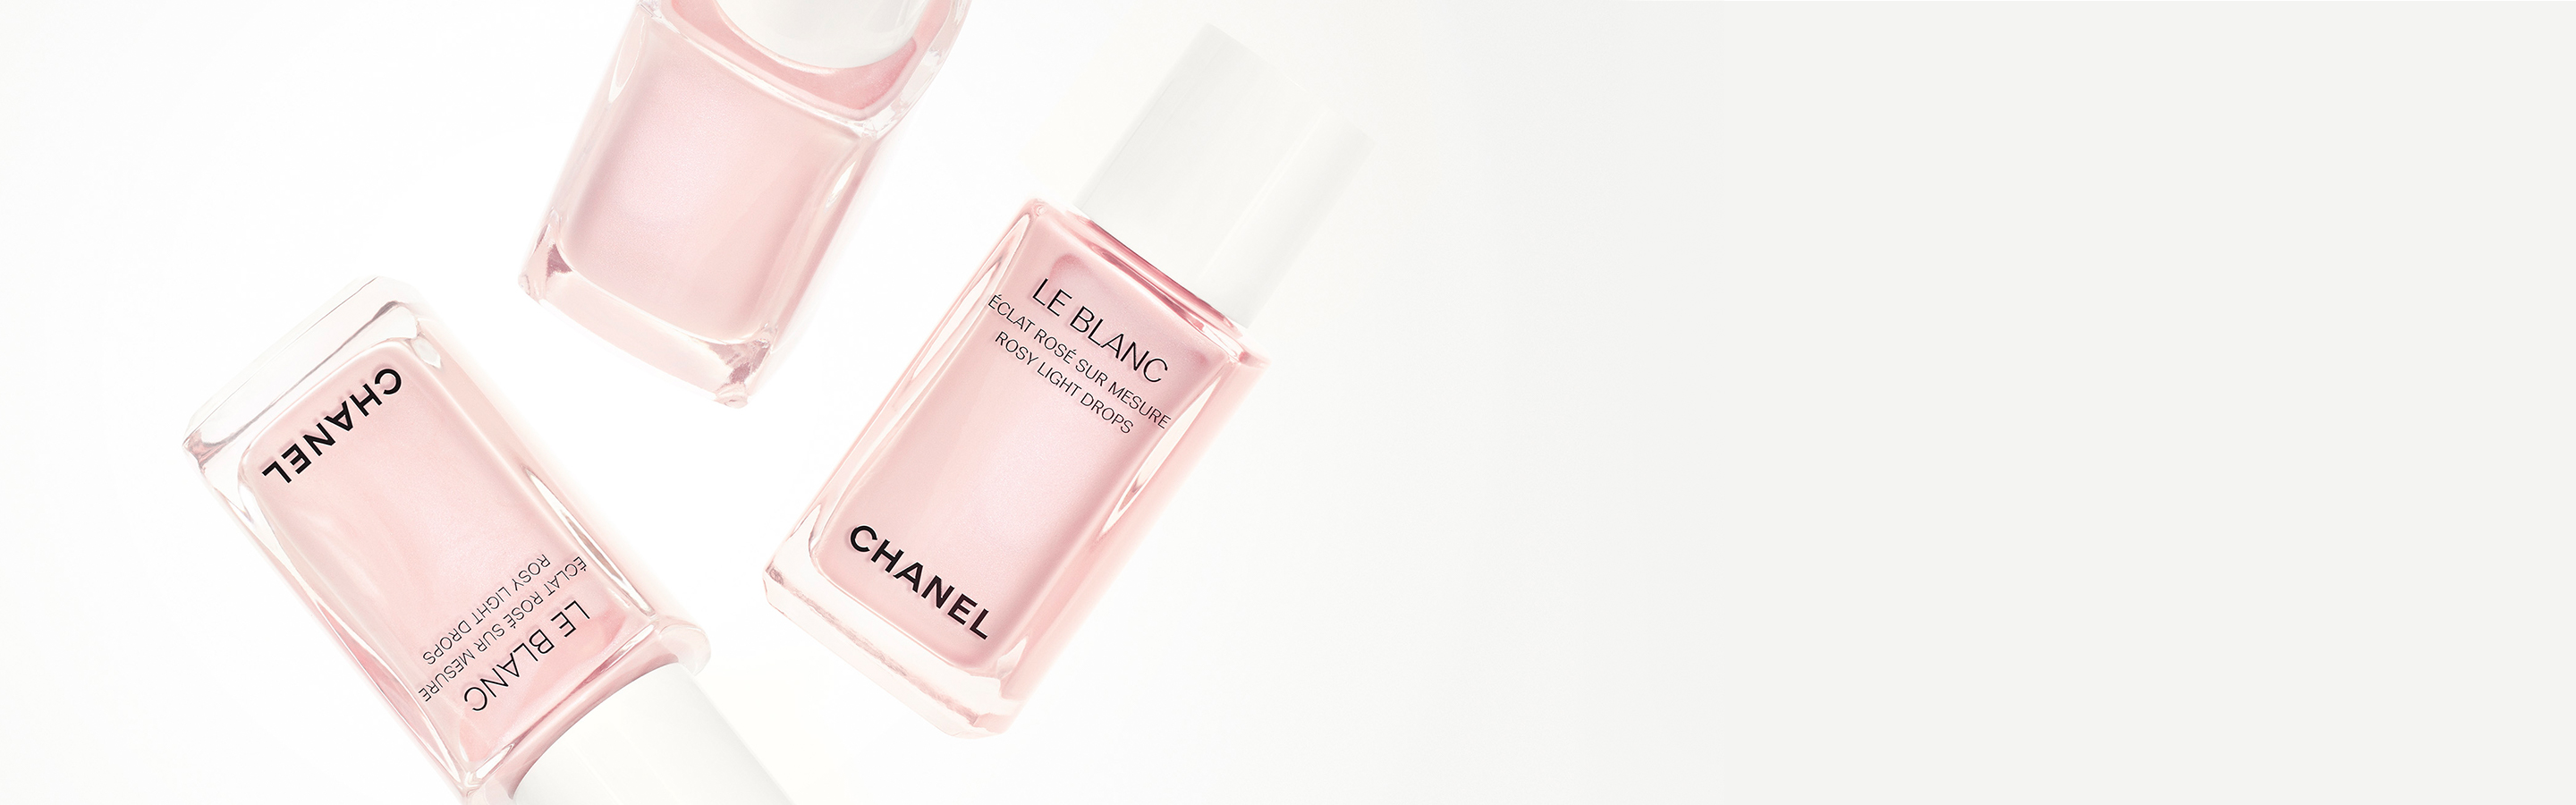 CHANEL LE BLANC - Skin Glowing Products | CHANEL